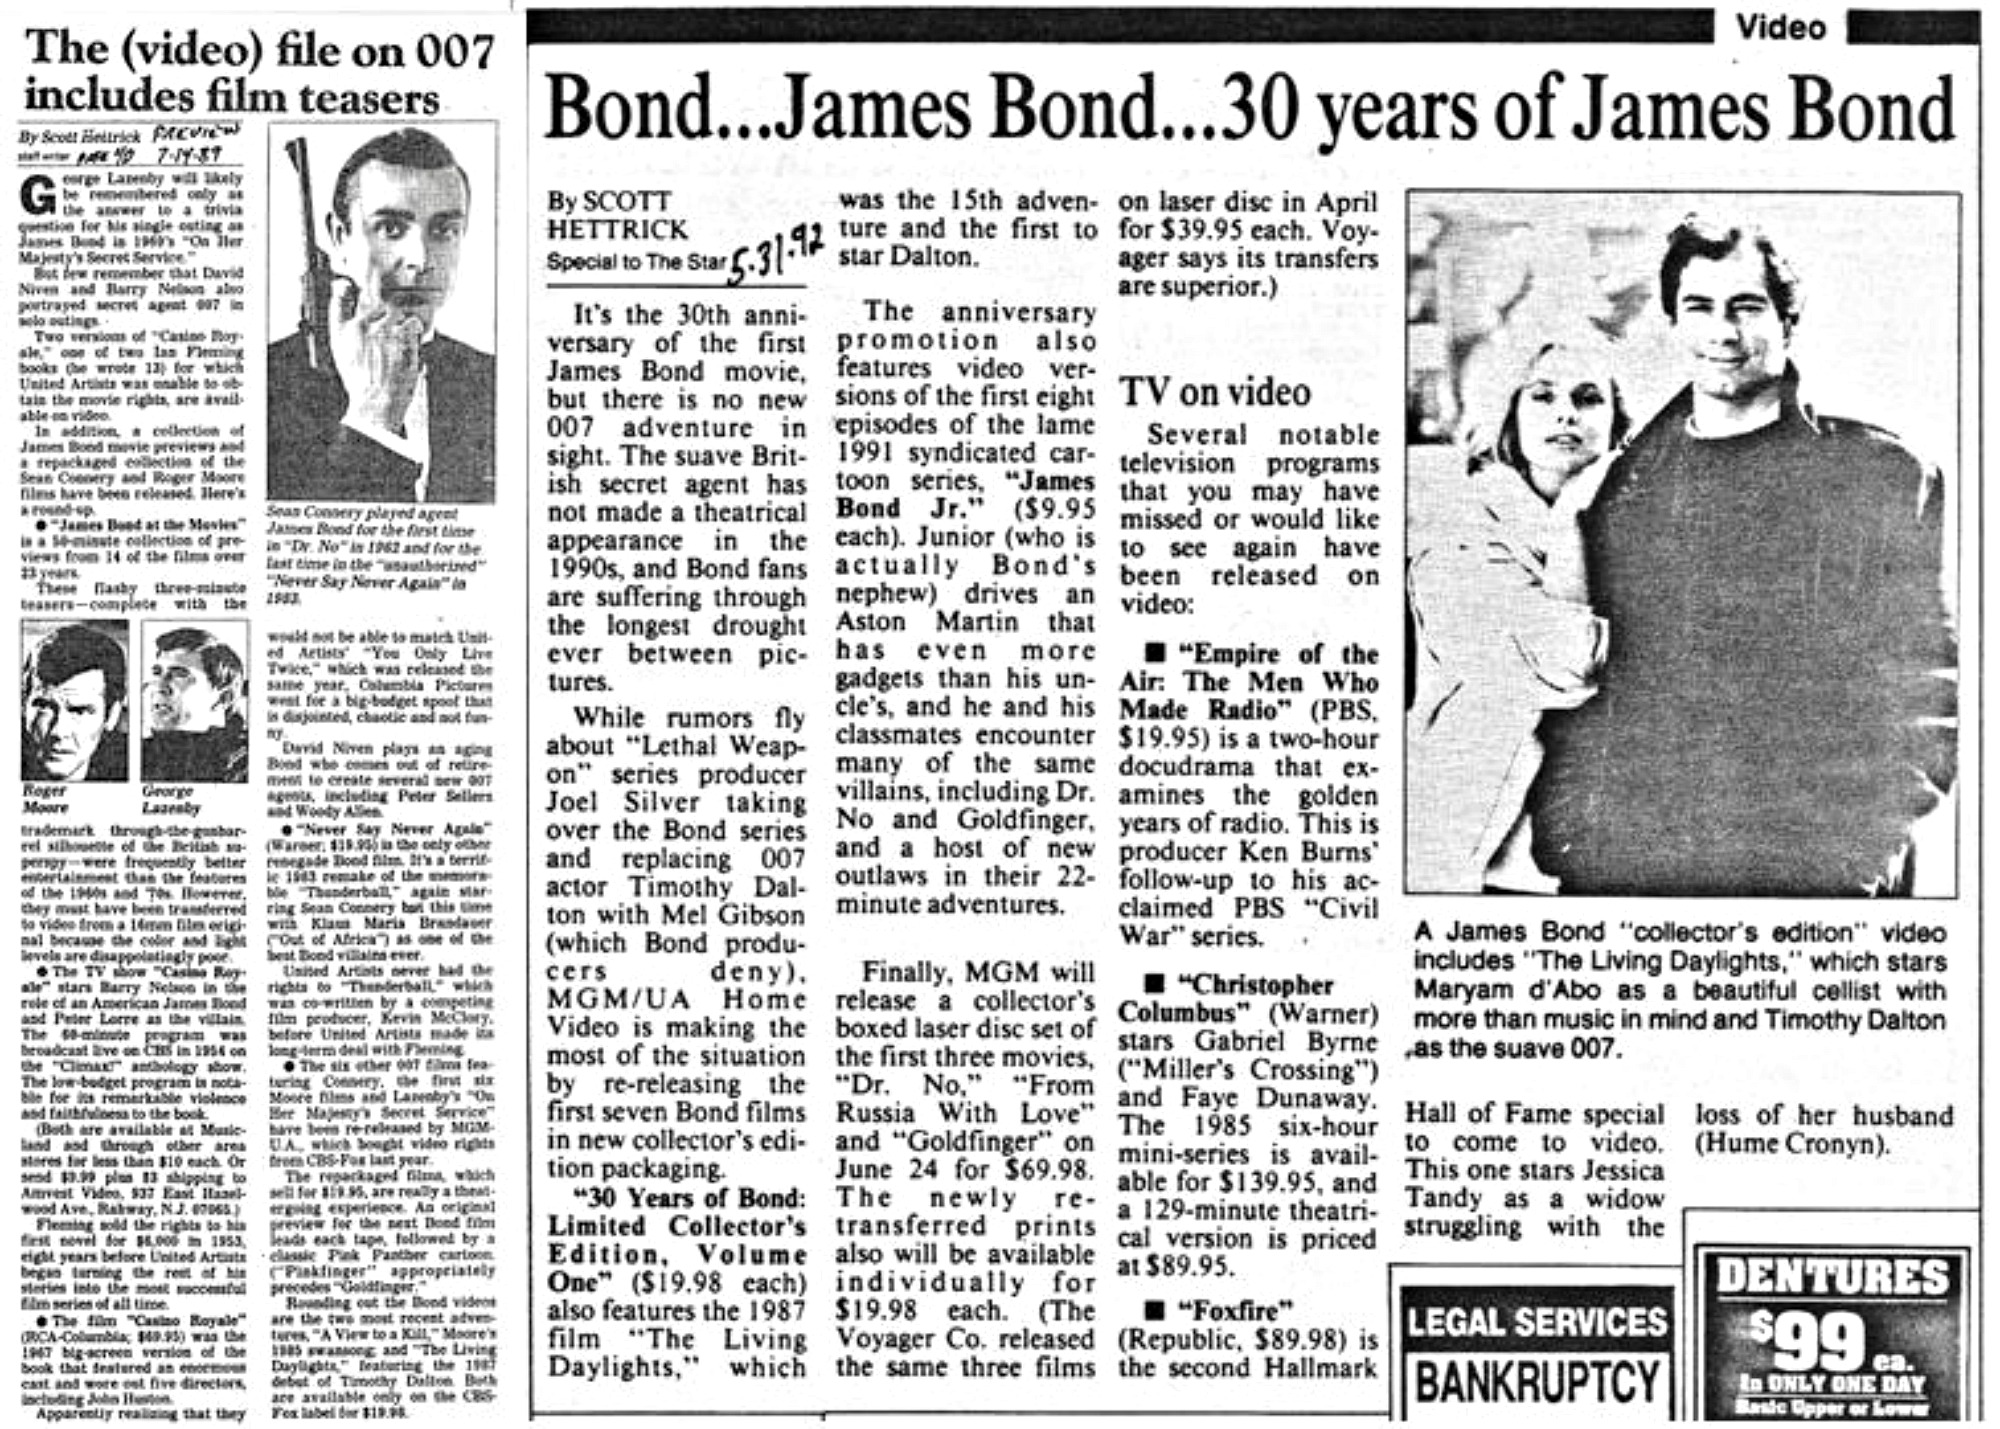 a7d6cd2a24 My home video columns in Kansas City Star in 1989 about the slew of  unofficial Bond movies and programs, and in 1992 reflecting the creative  efforts by ...